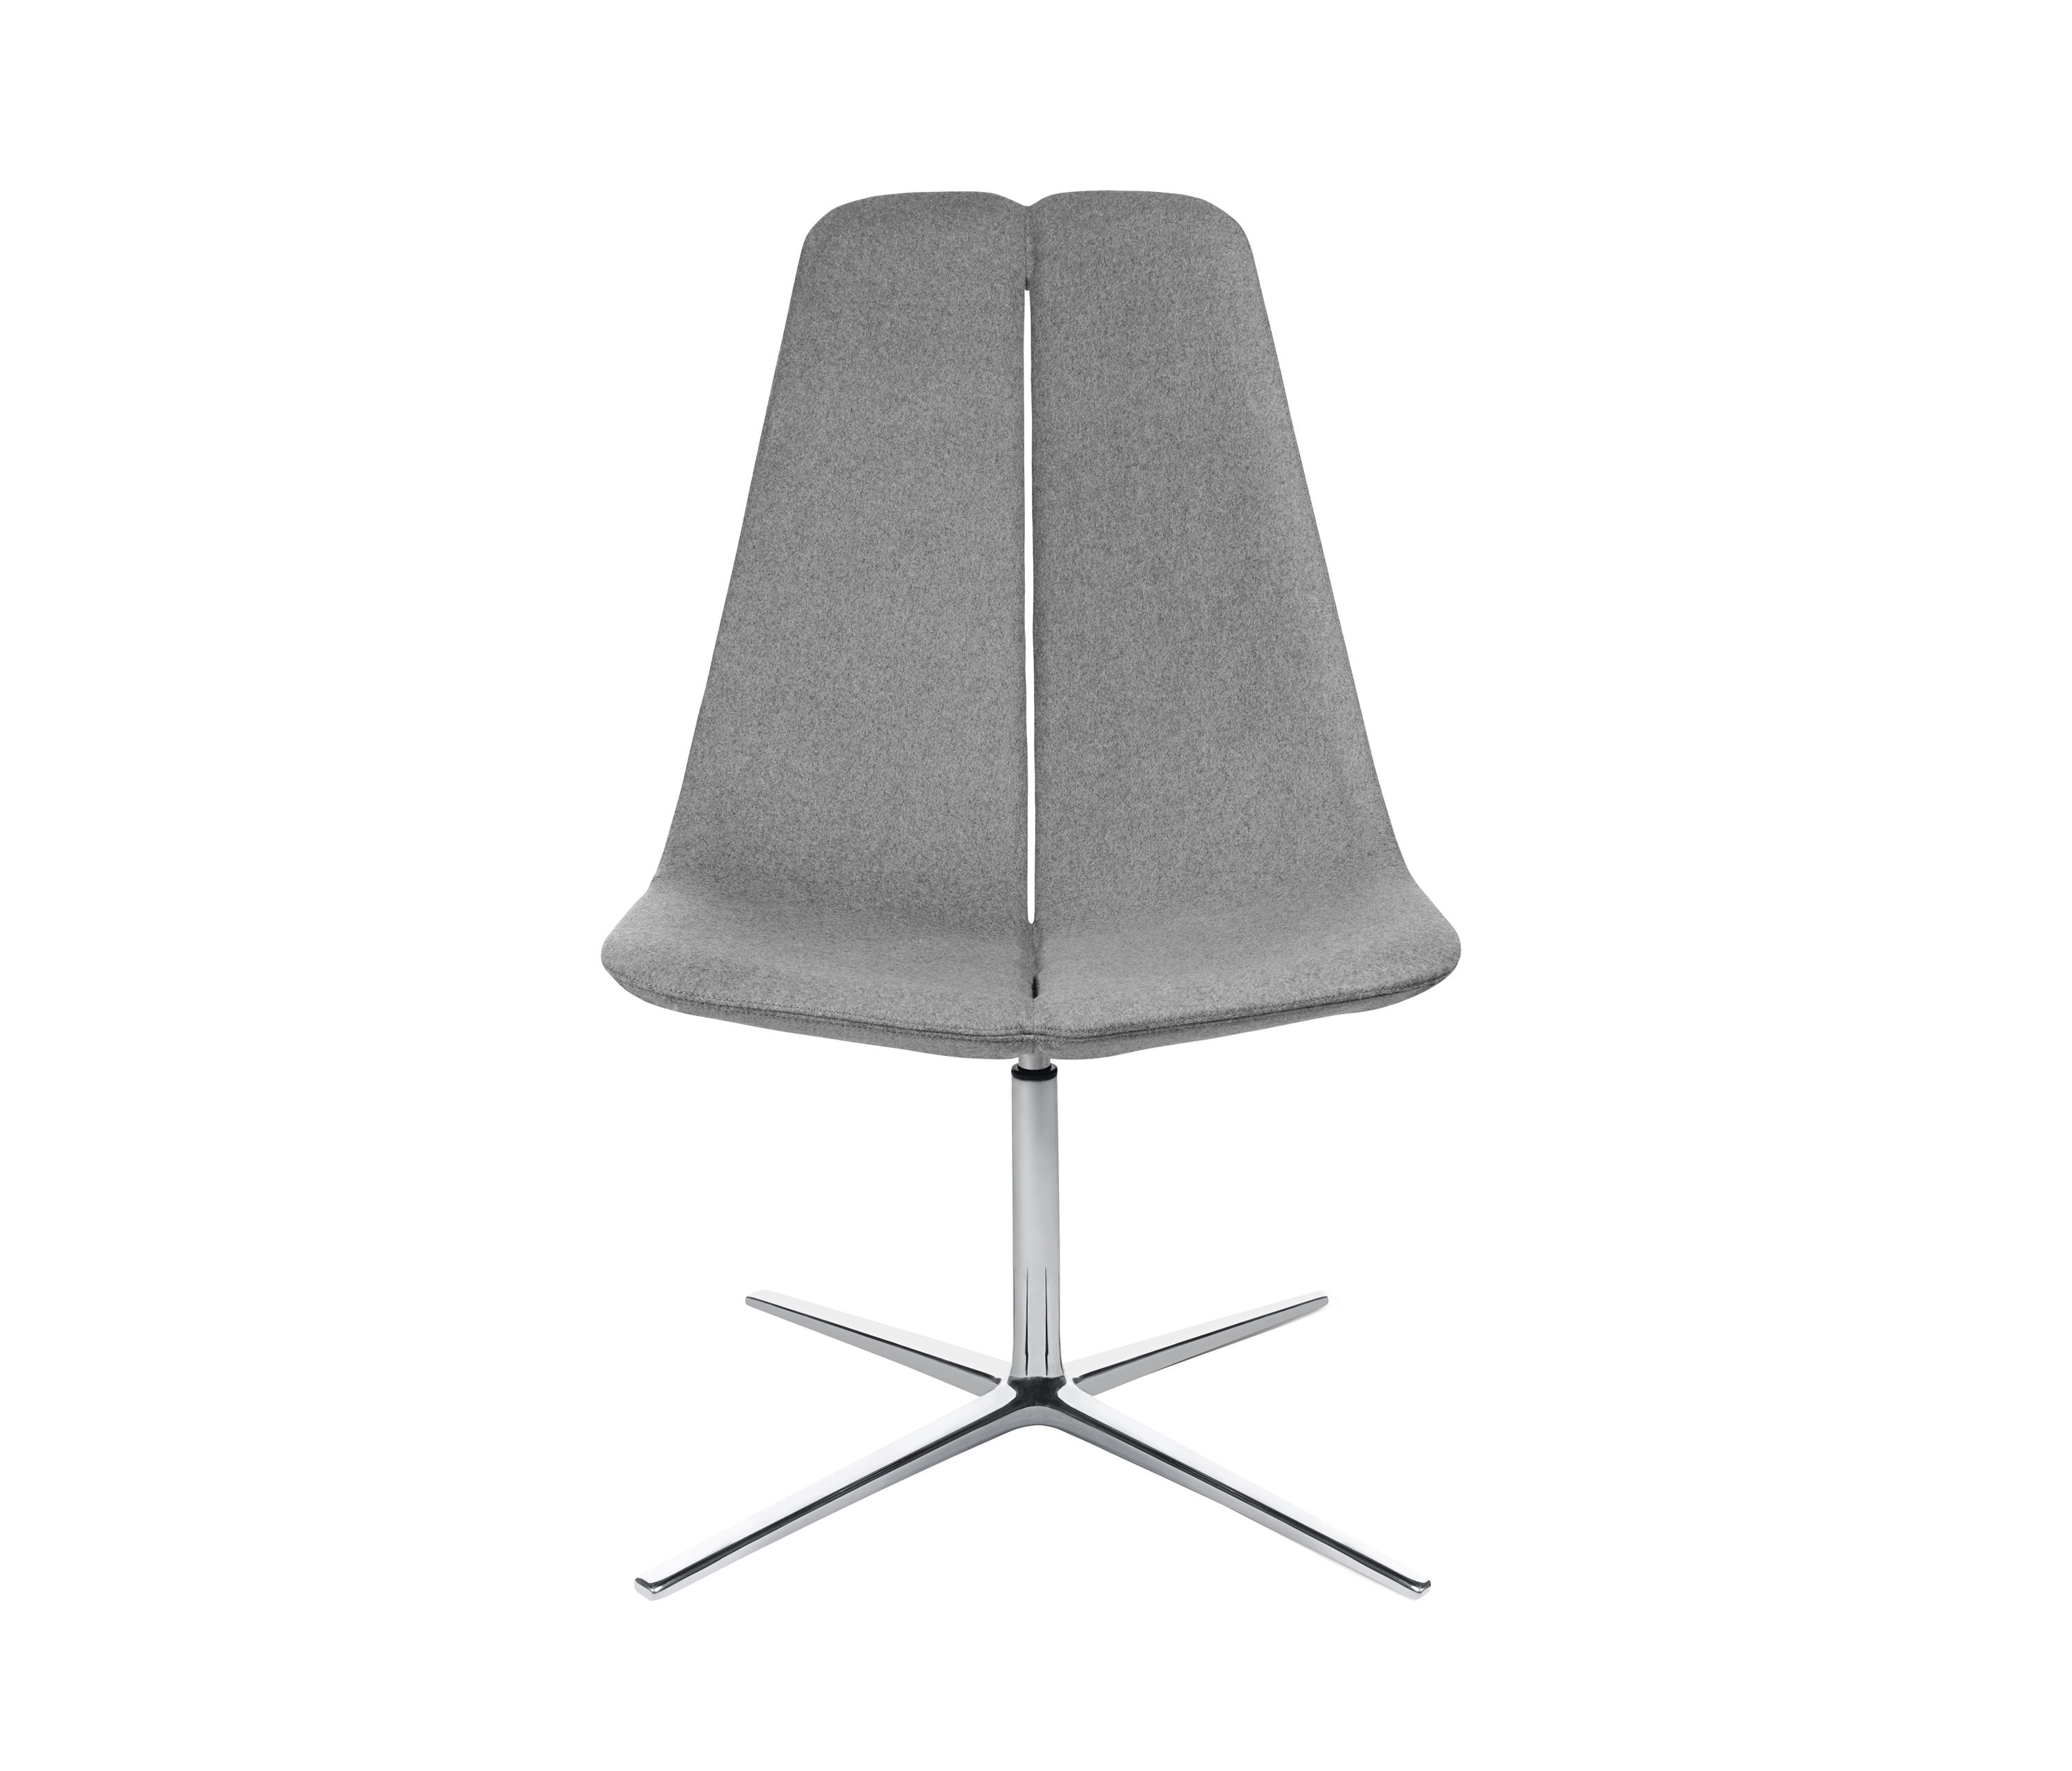 Wagner Sessel W Lounge Chair 2 Leder Sessel Von Wagner Architonic